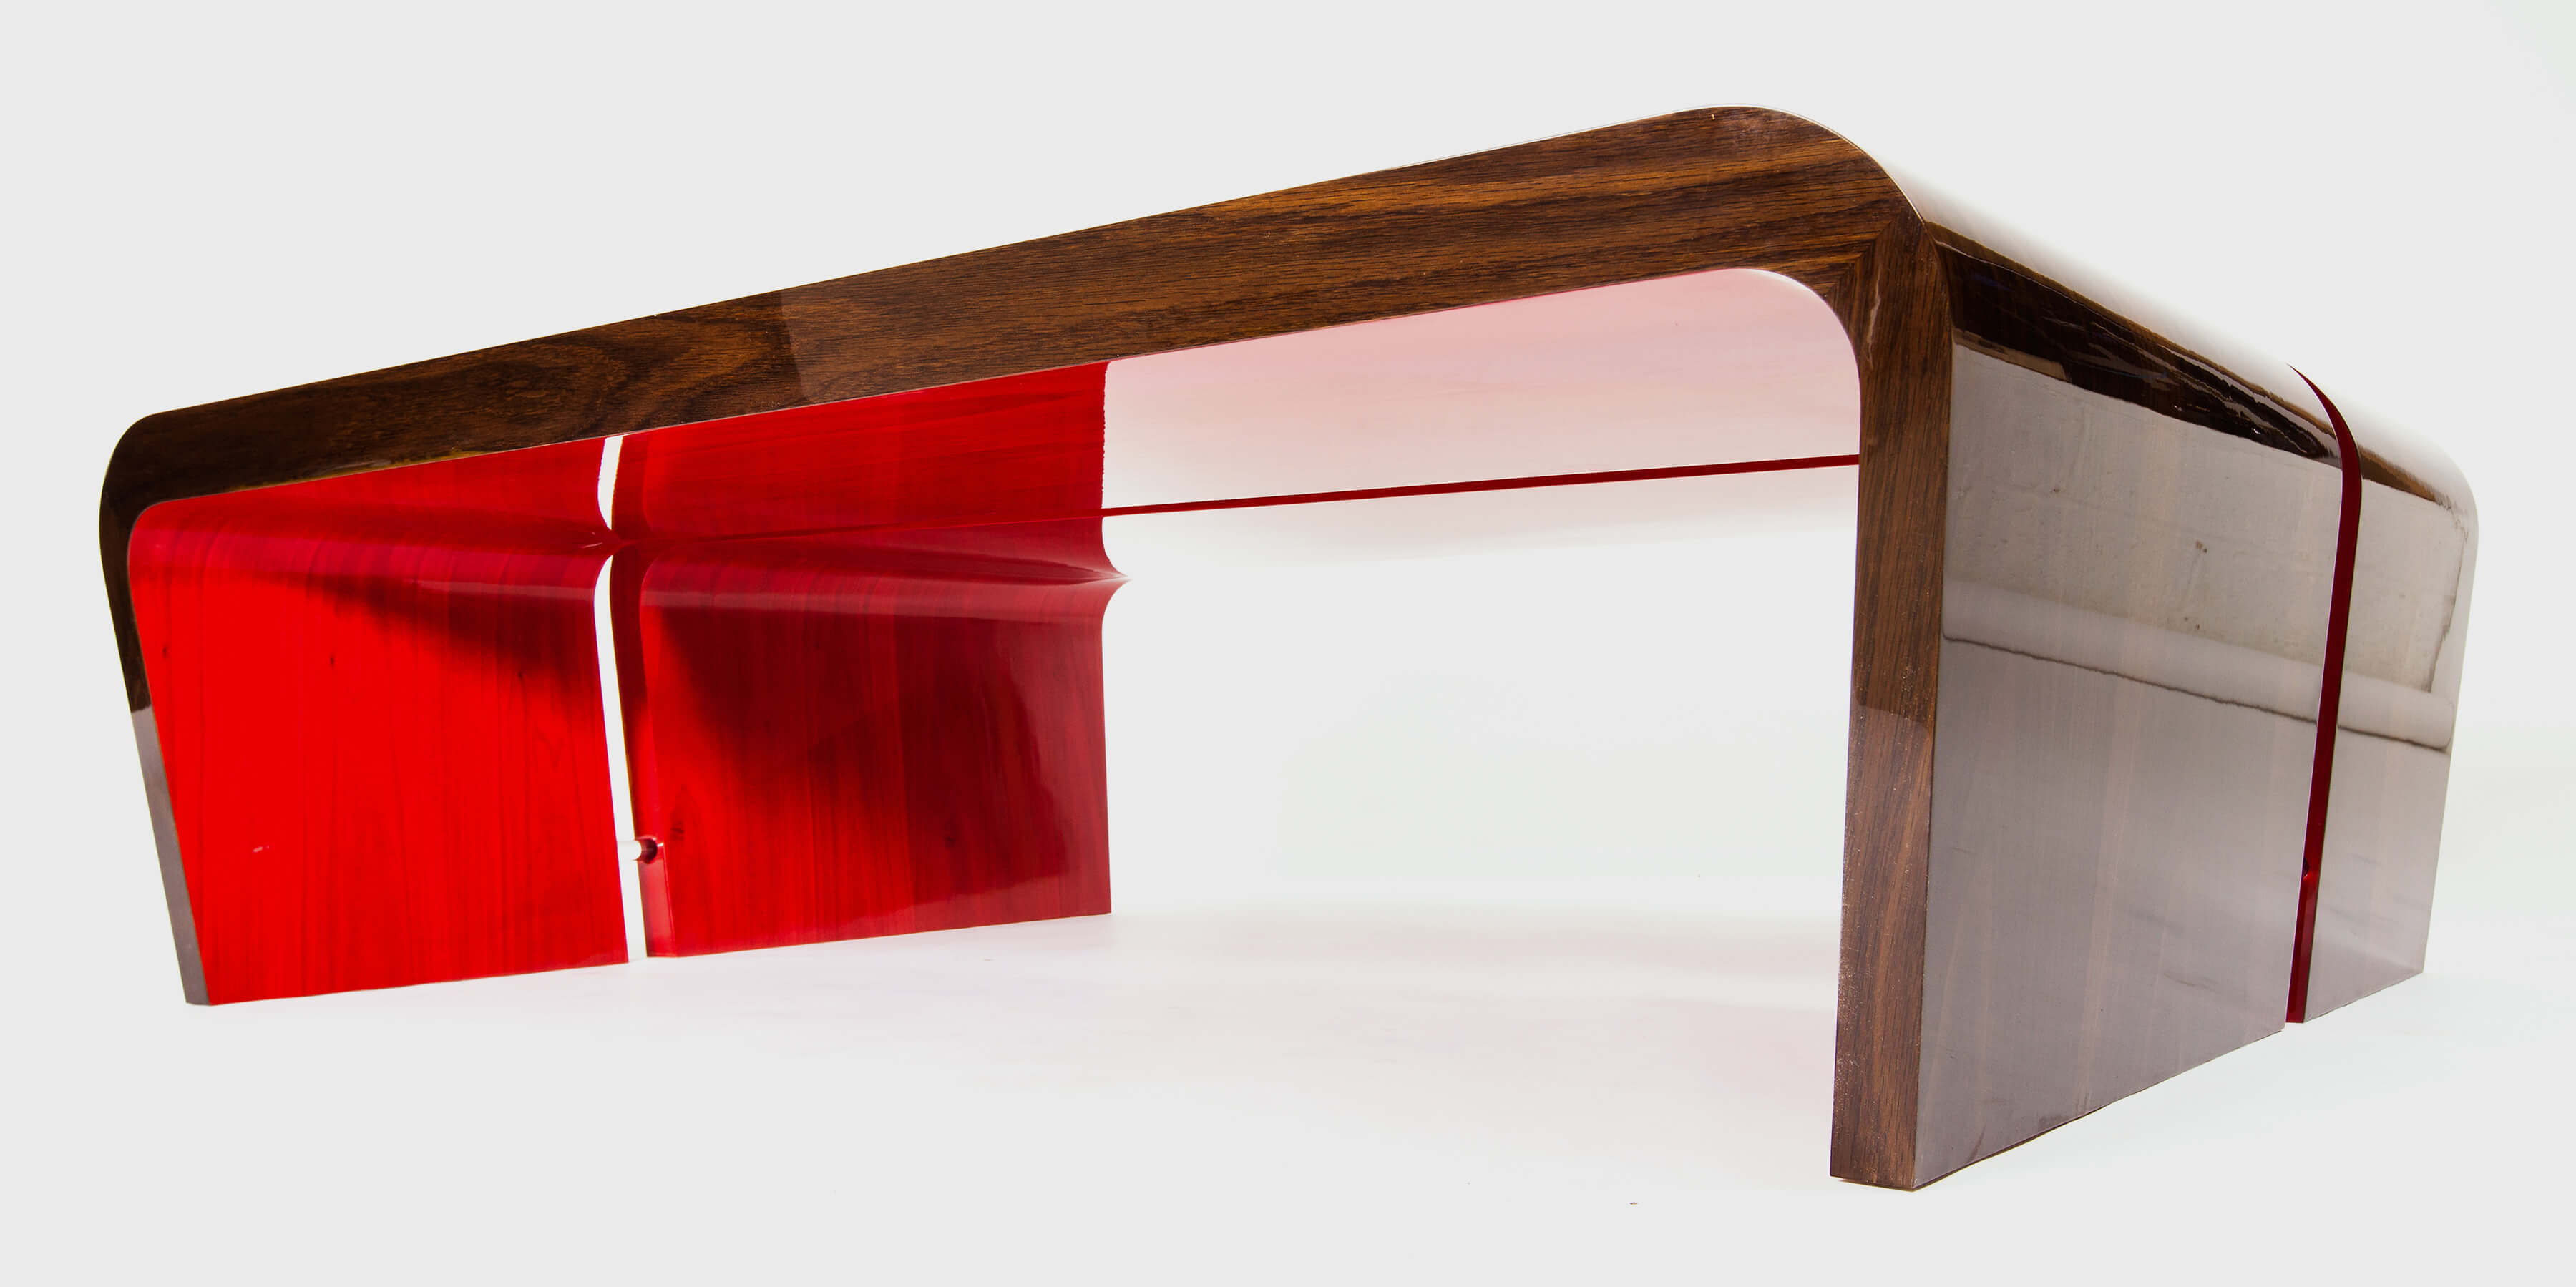 Pair of hand-made coffee tables with fun red detail